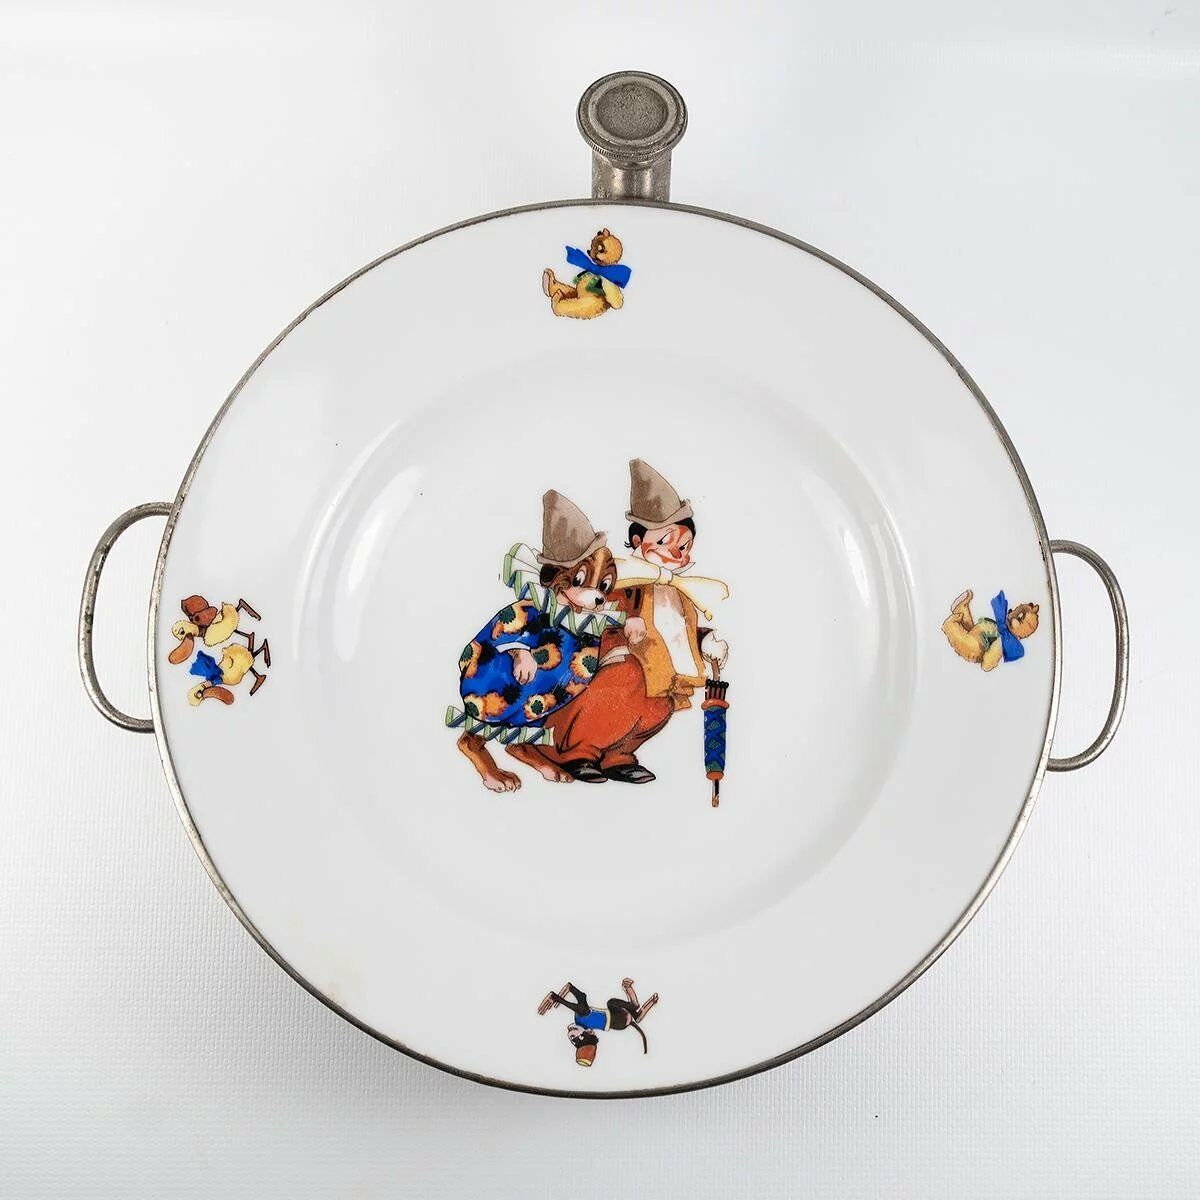 WMF c.1930-60 French Child's Hot Meal Dish, Warmer, Porcelain Plate with Clown